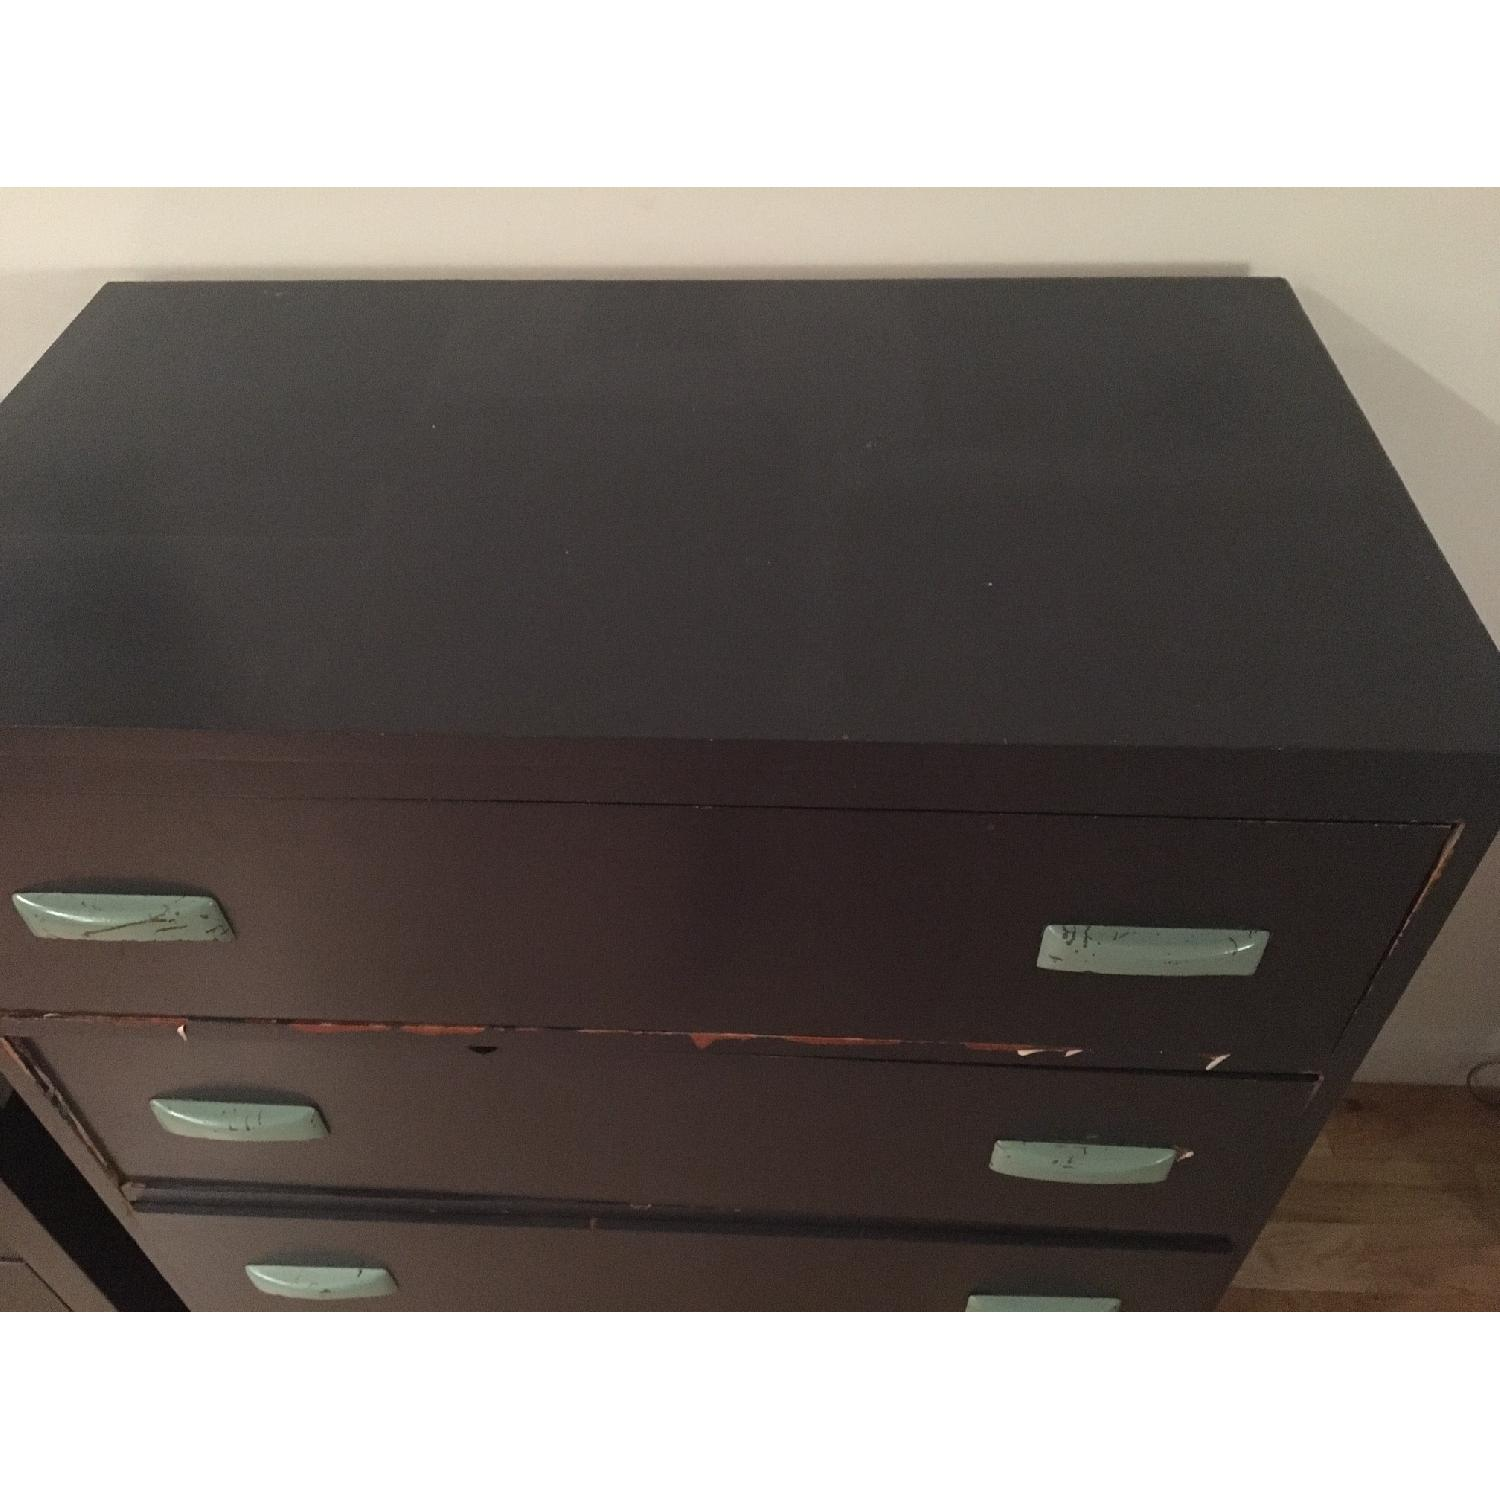 Hummel's Good Furniture Dark Blue Classic 4-Drawer Dresser - image-4